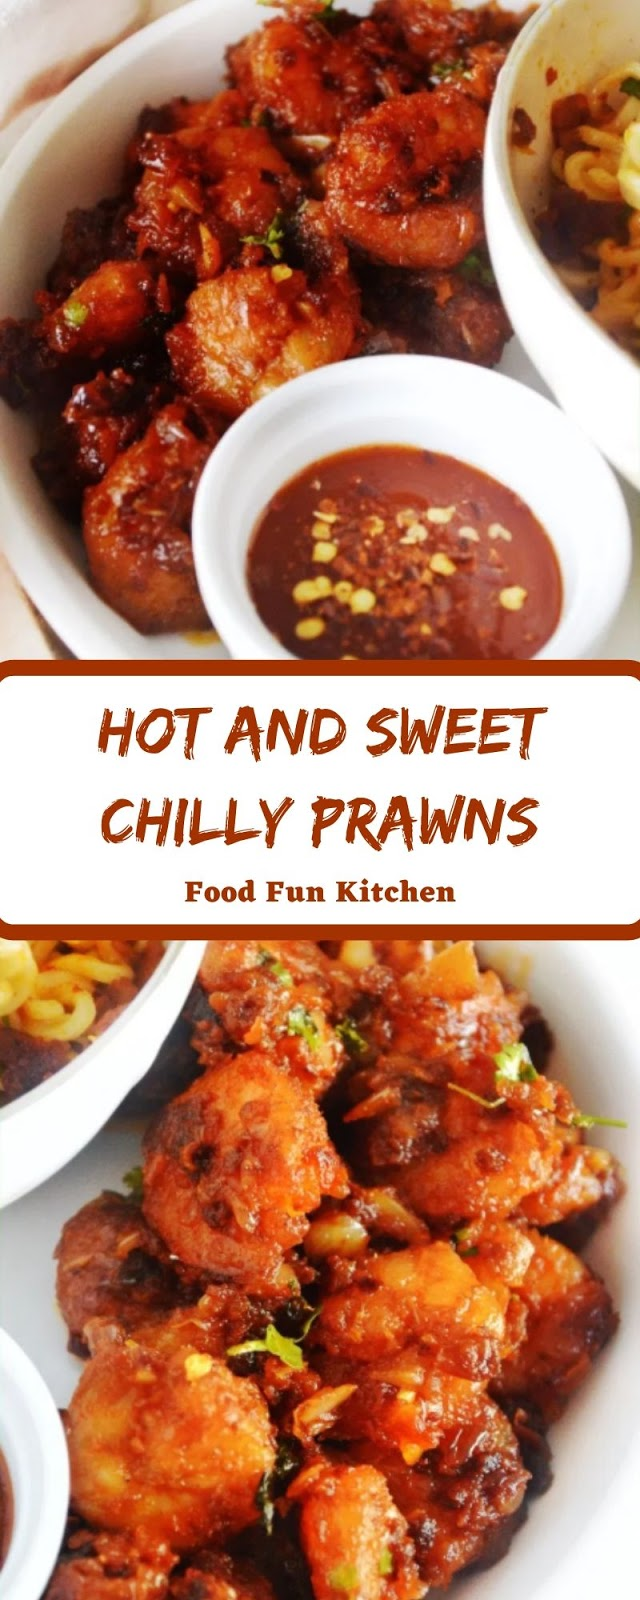 HOT AND SWEET CHILLY PRAWNS